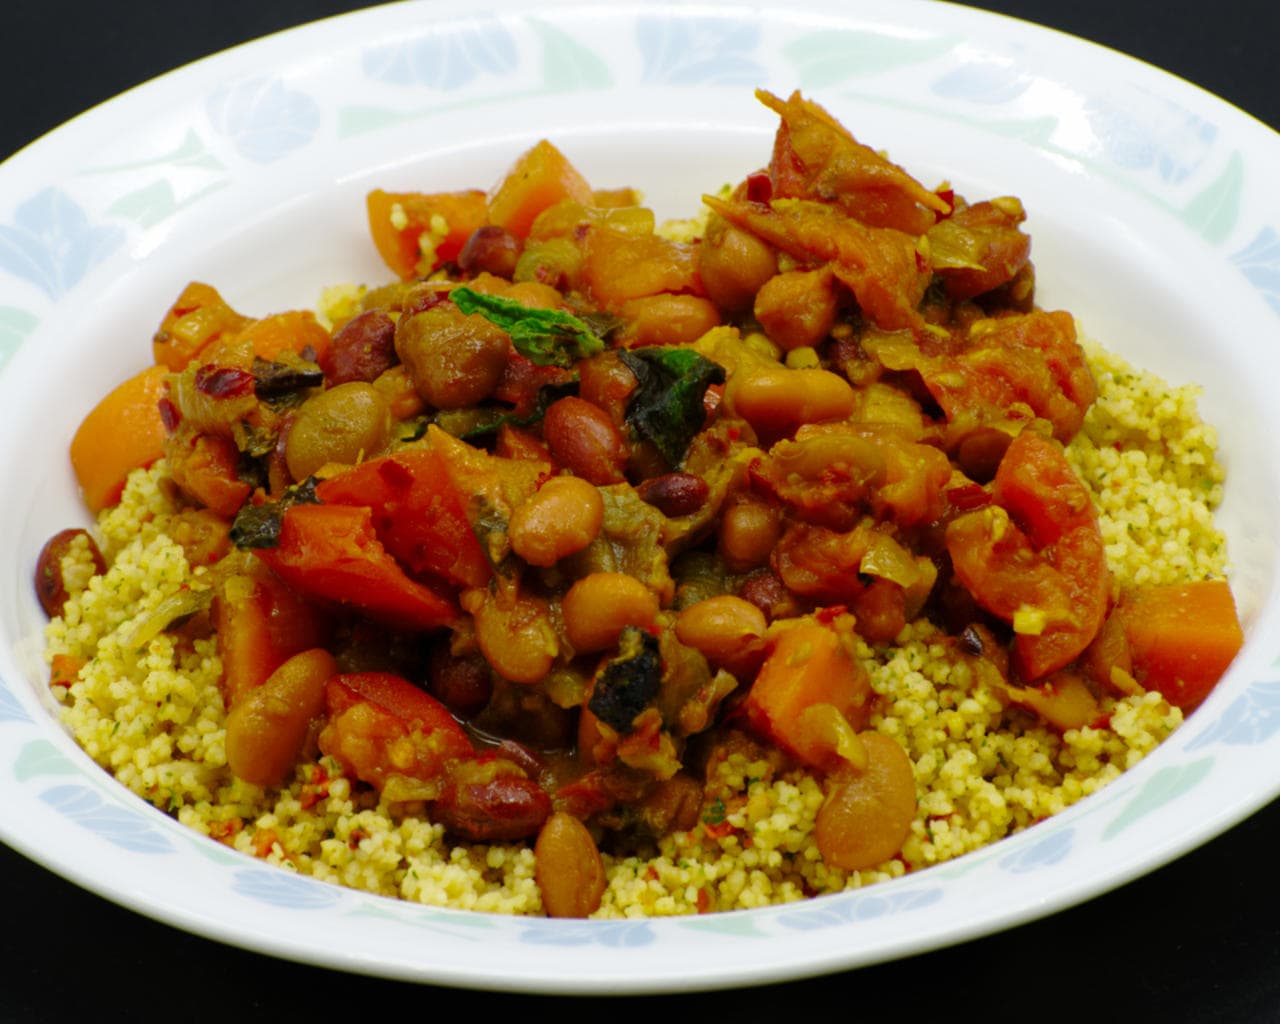 Vegetable and Beans Tagine Image